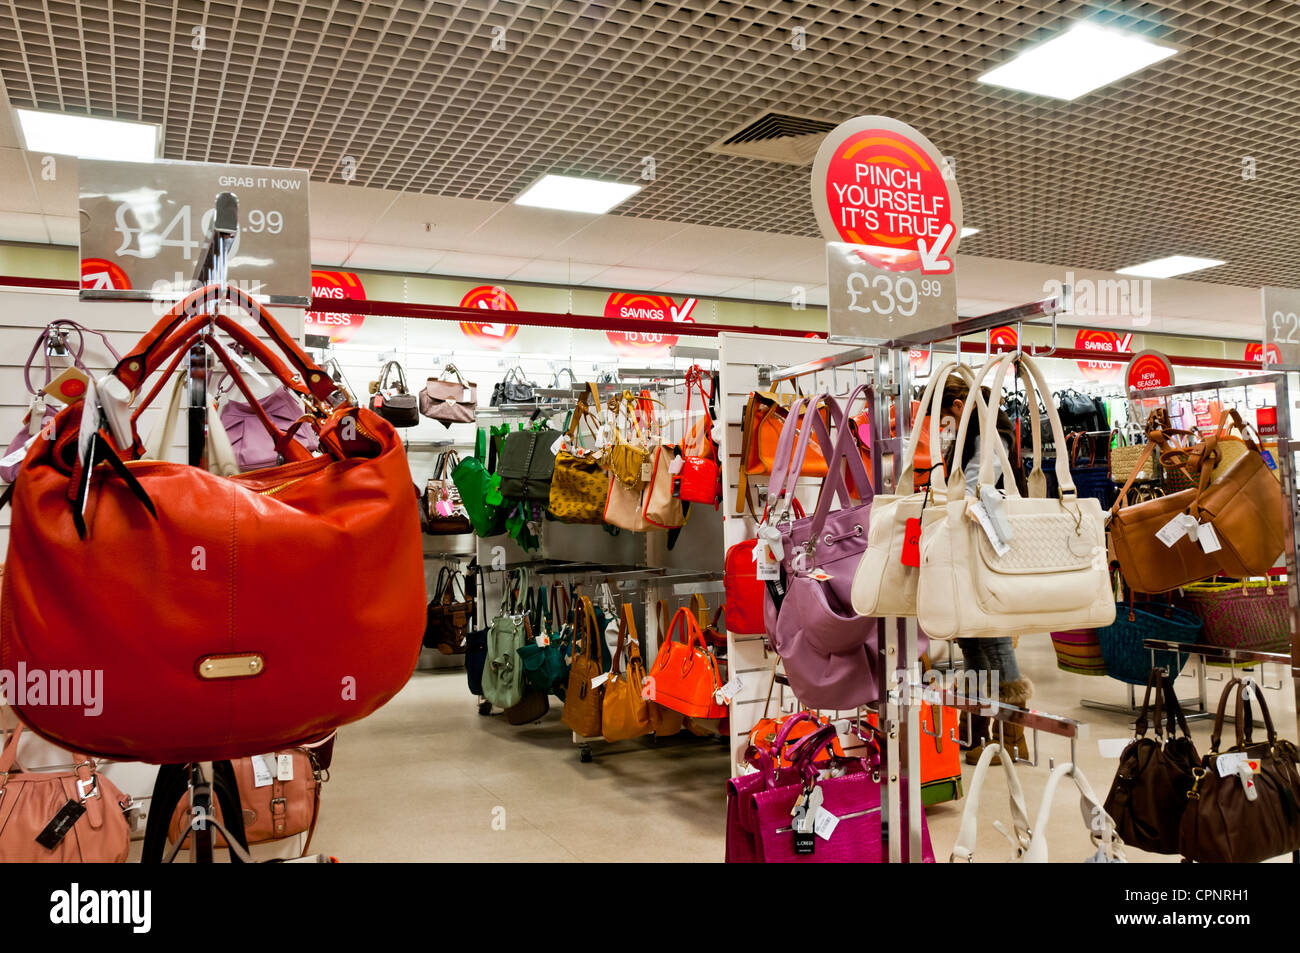 branded ladies handbags sold at discounted prices in tk maxx uk stock photo 48422669 alamy. Black Bedroom Furniture Sets. Home Design Ideas